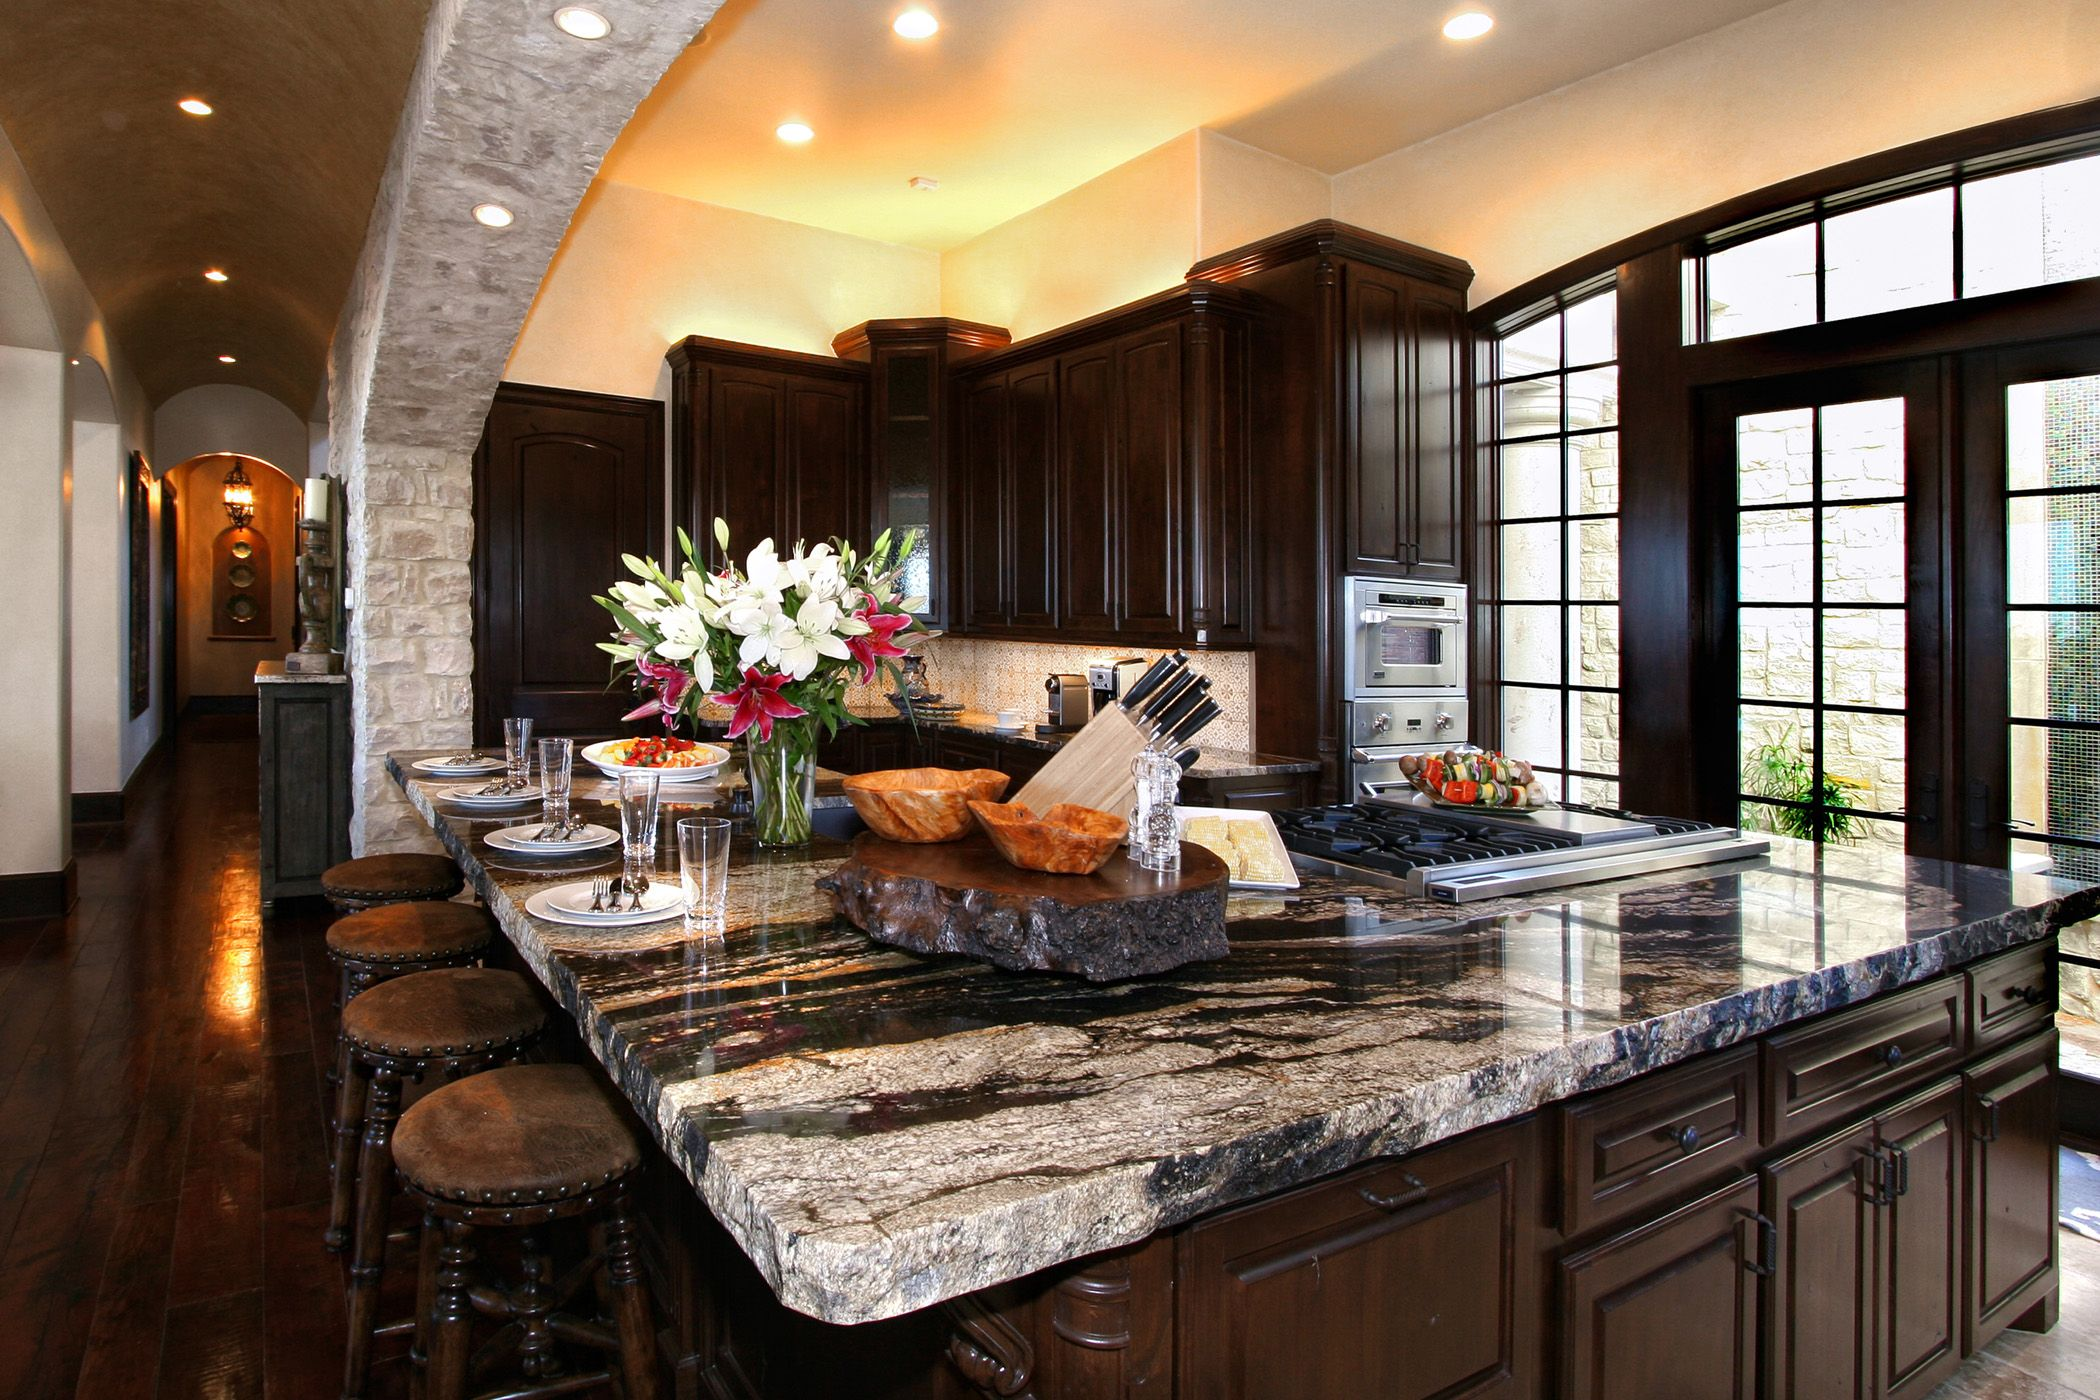 Small Kitchen Counter Lamps Black And Grey Granite Countertop Connected By Black Wooden